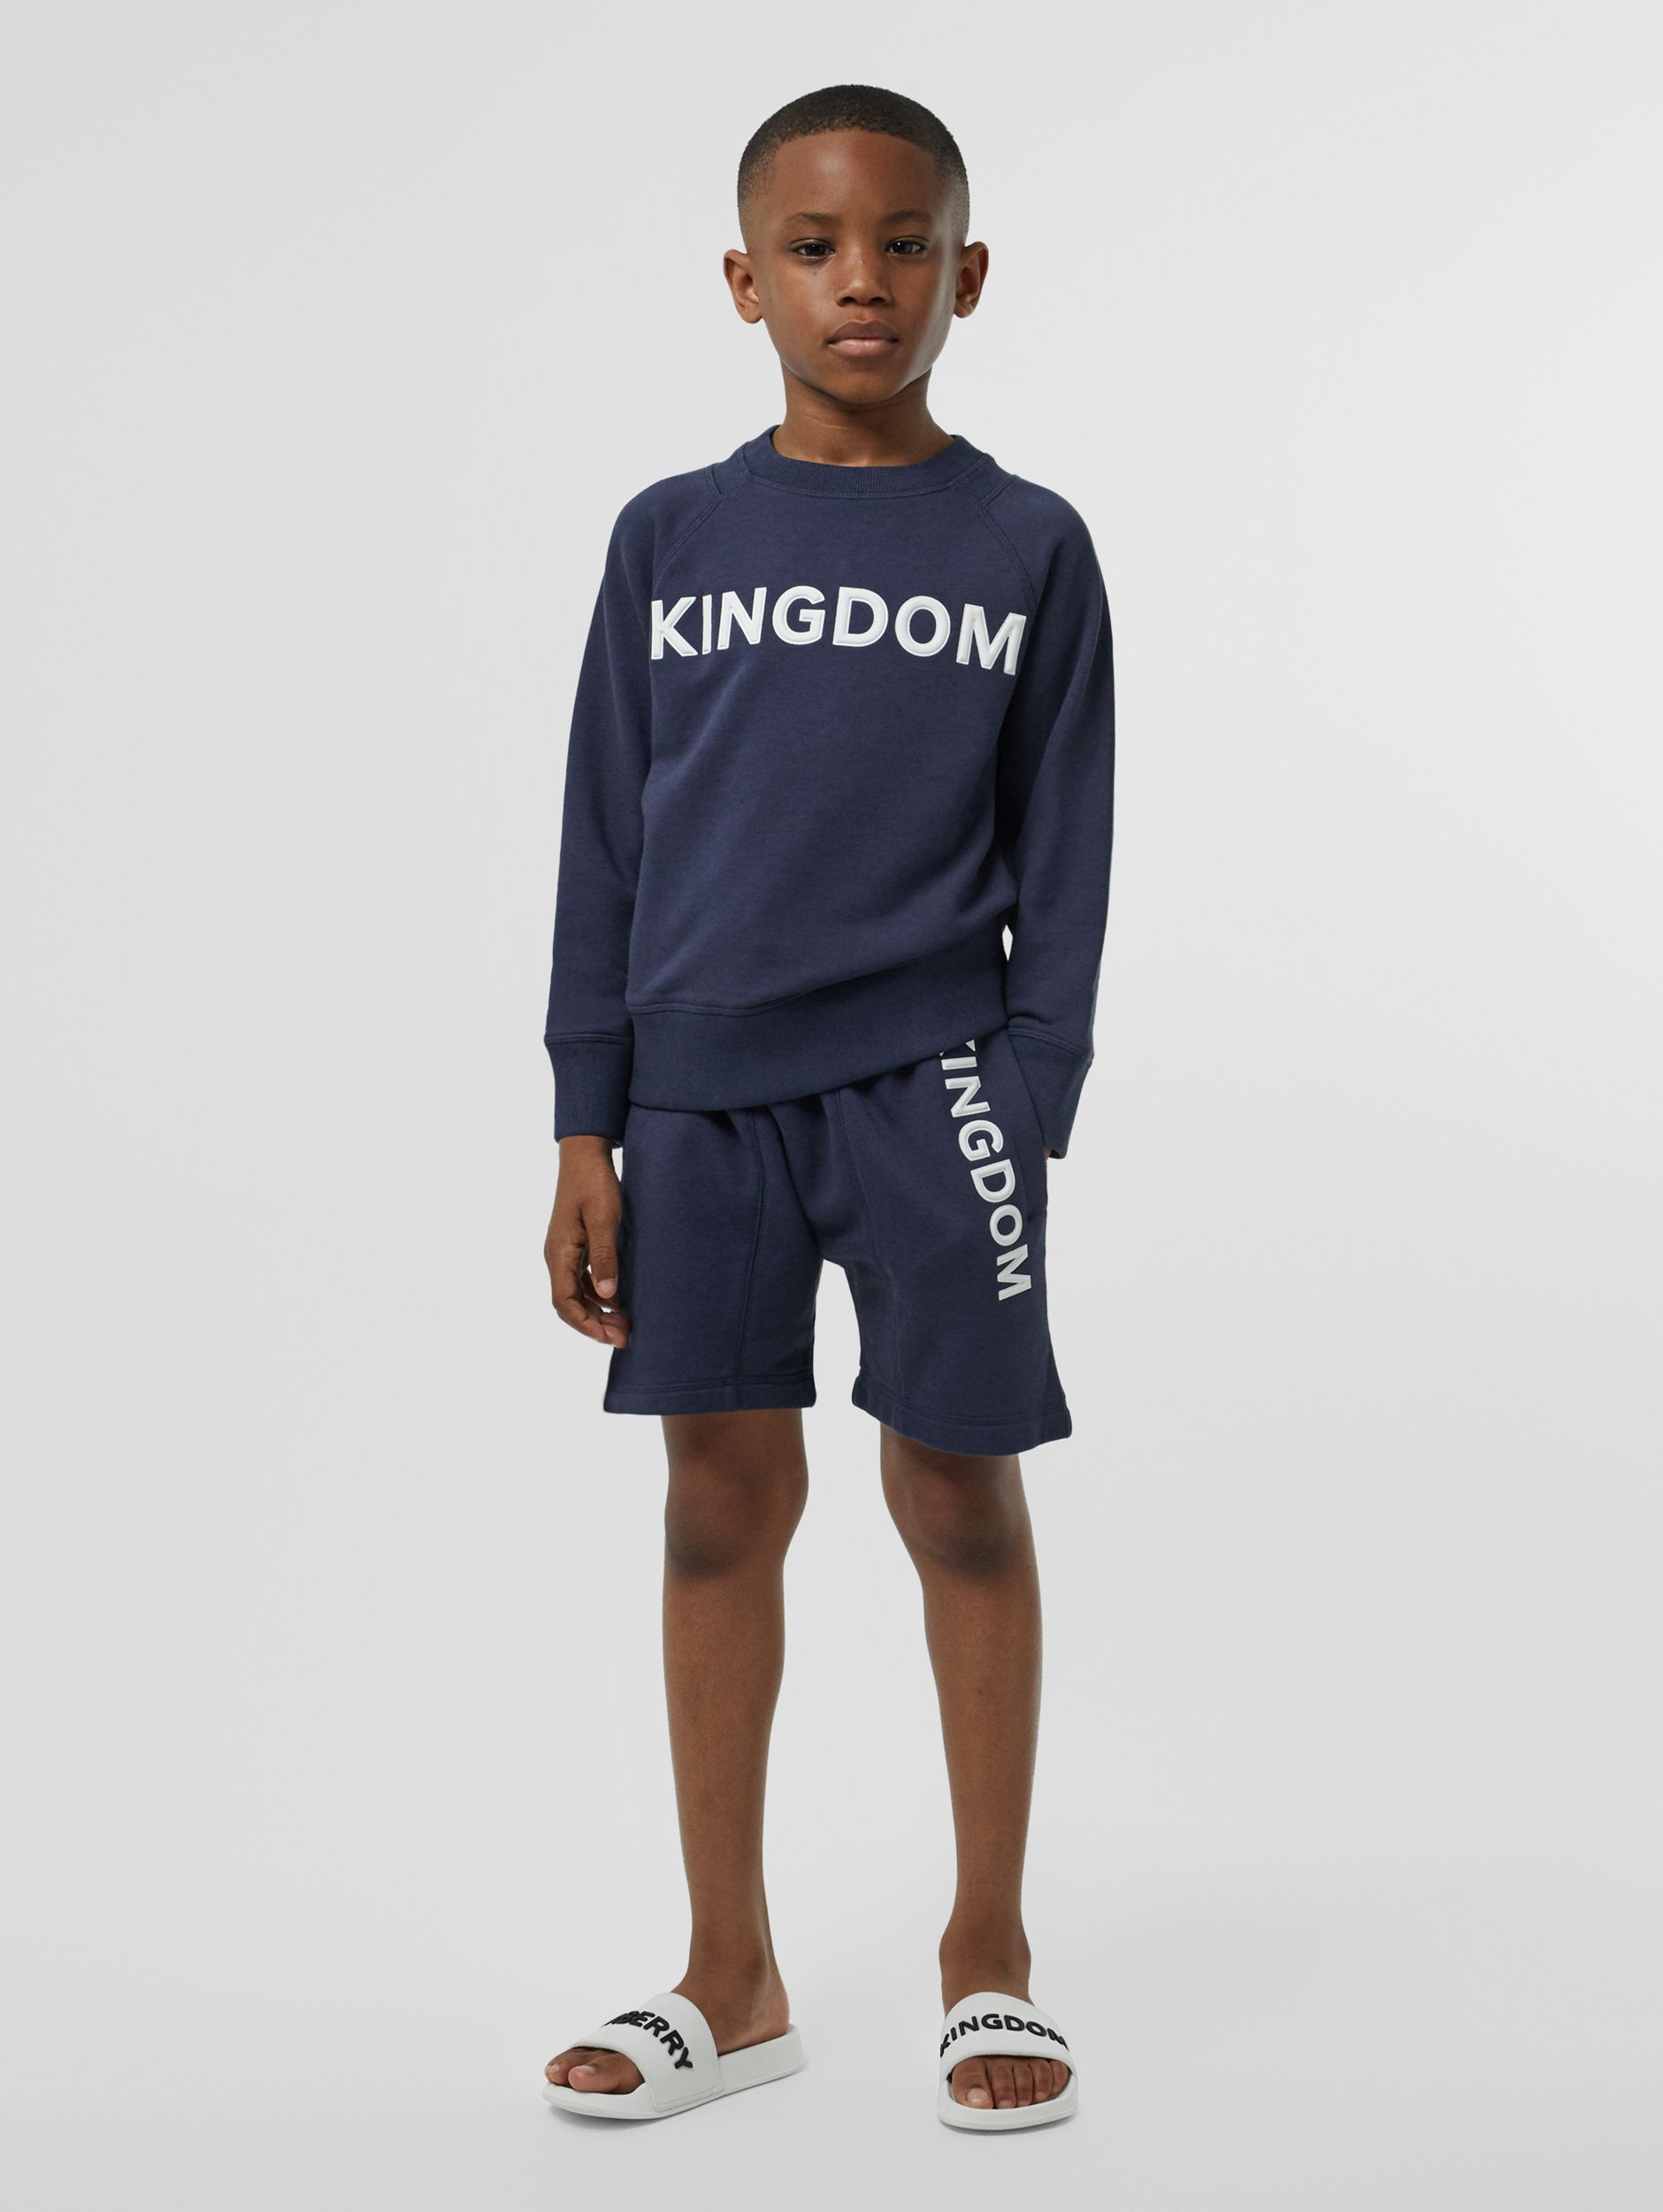 Kingdom Motif Cotton Drawcord Shorts in Slate Blue Melange | Burberry - 3